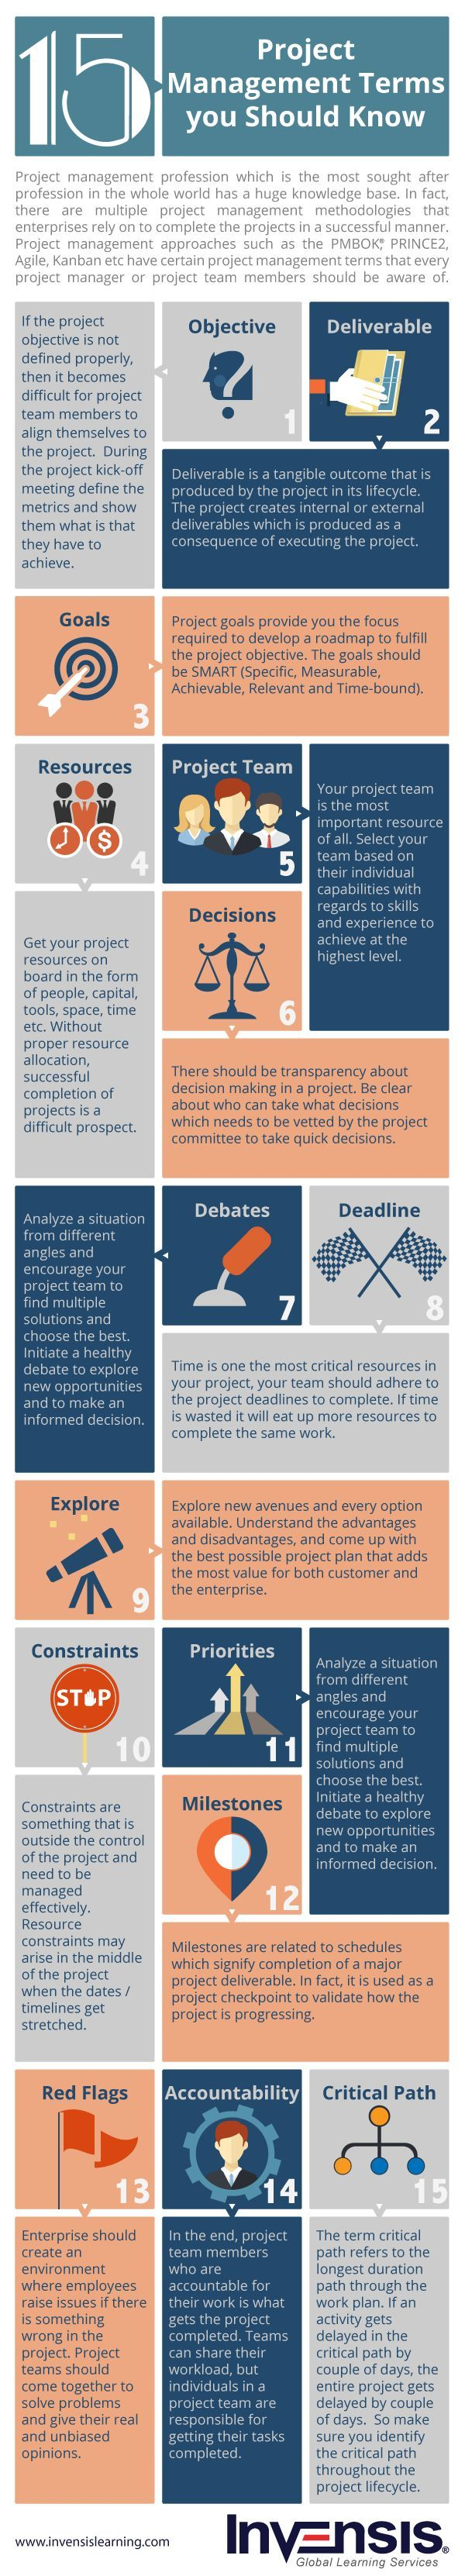 An infographic depicting important project management terms you should know. If you are a project manager or a project team member incorporate these terms in your vocabulary to get the best out of your project.